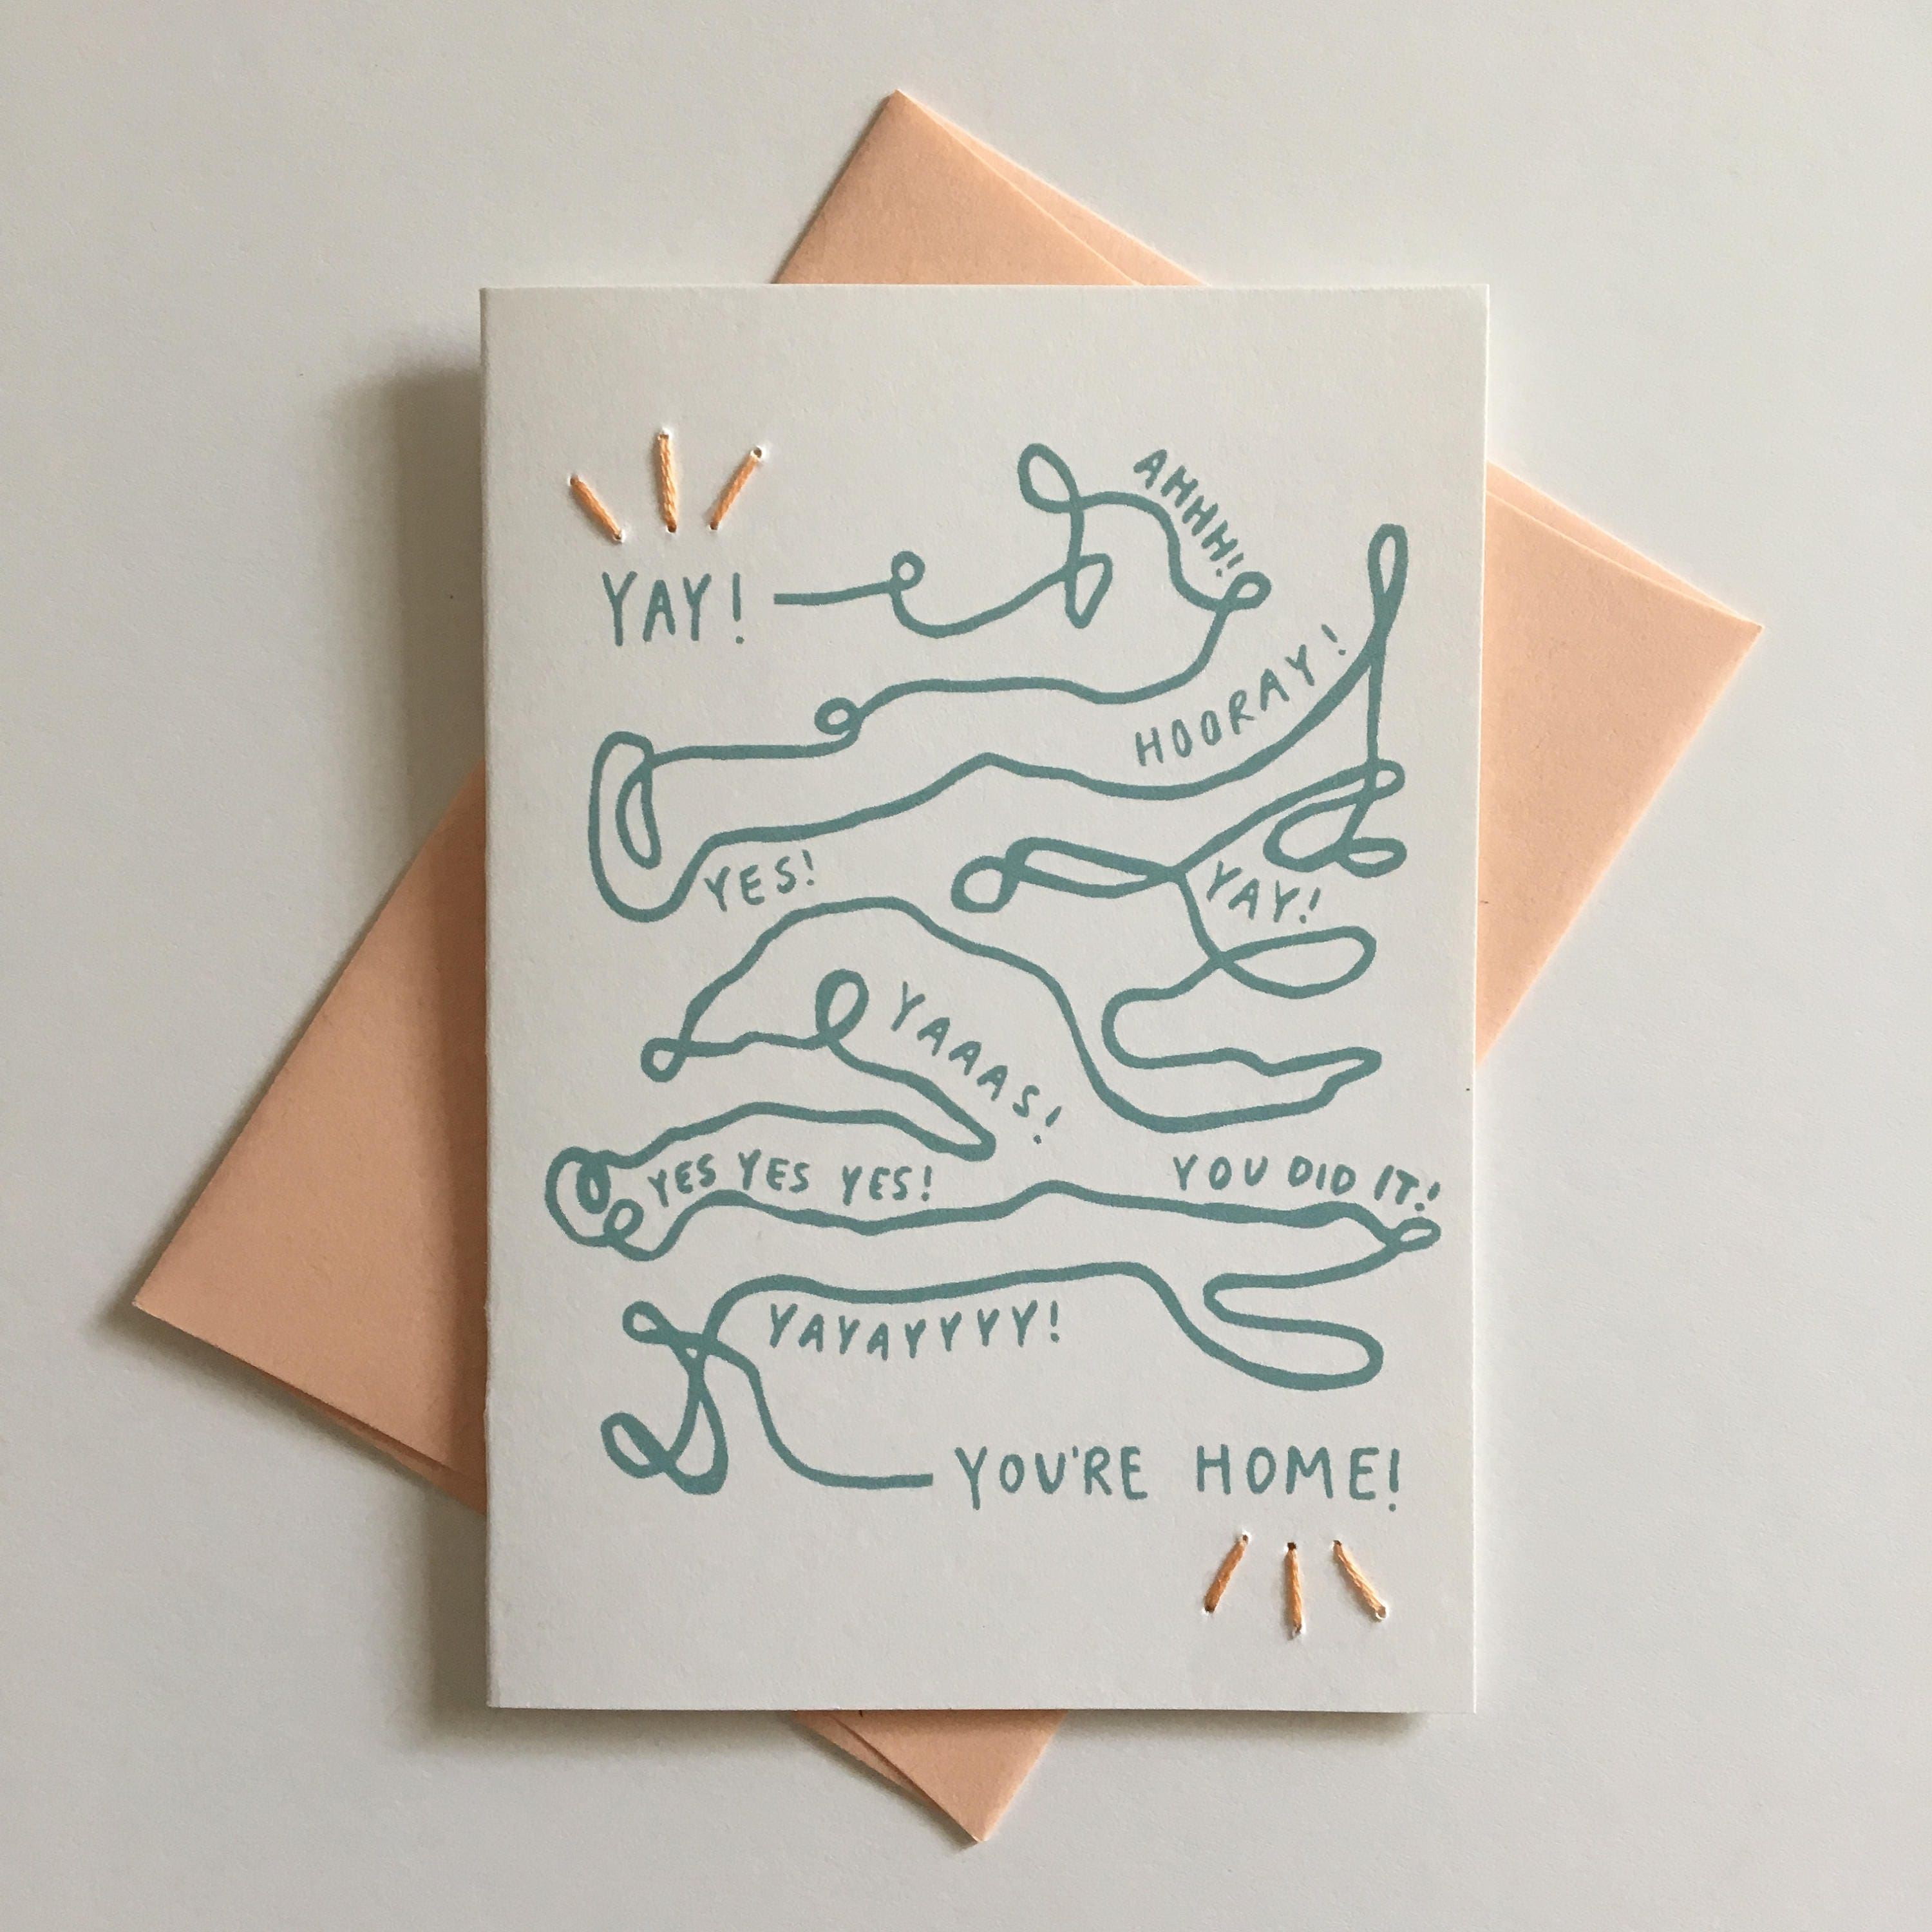 Yay youre home hand stitched greeting card miss you zoom kristyandbryce Choice Image